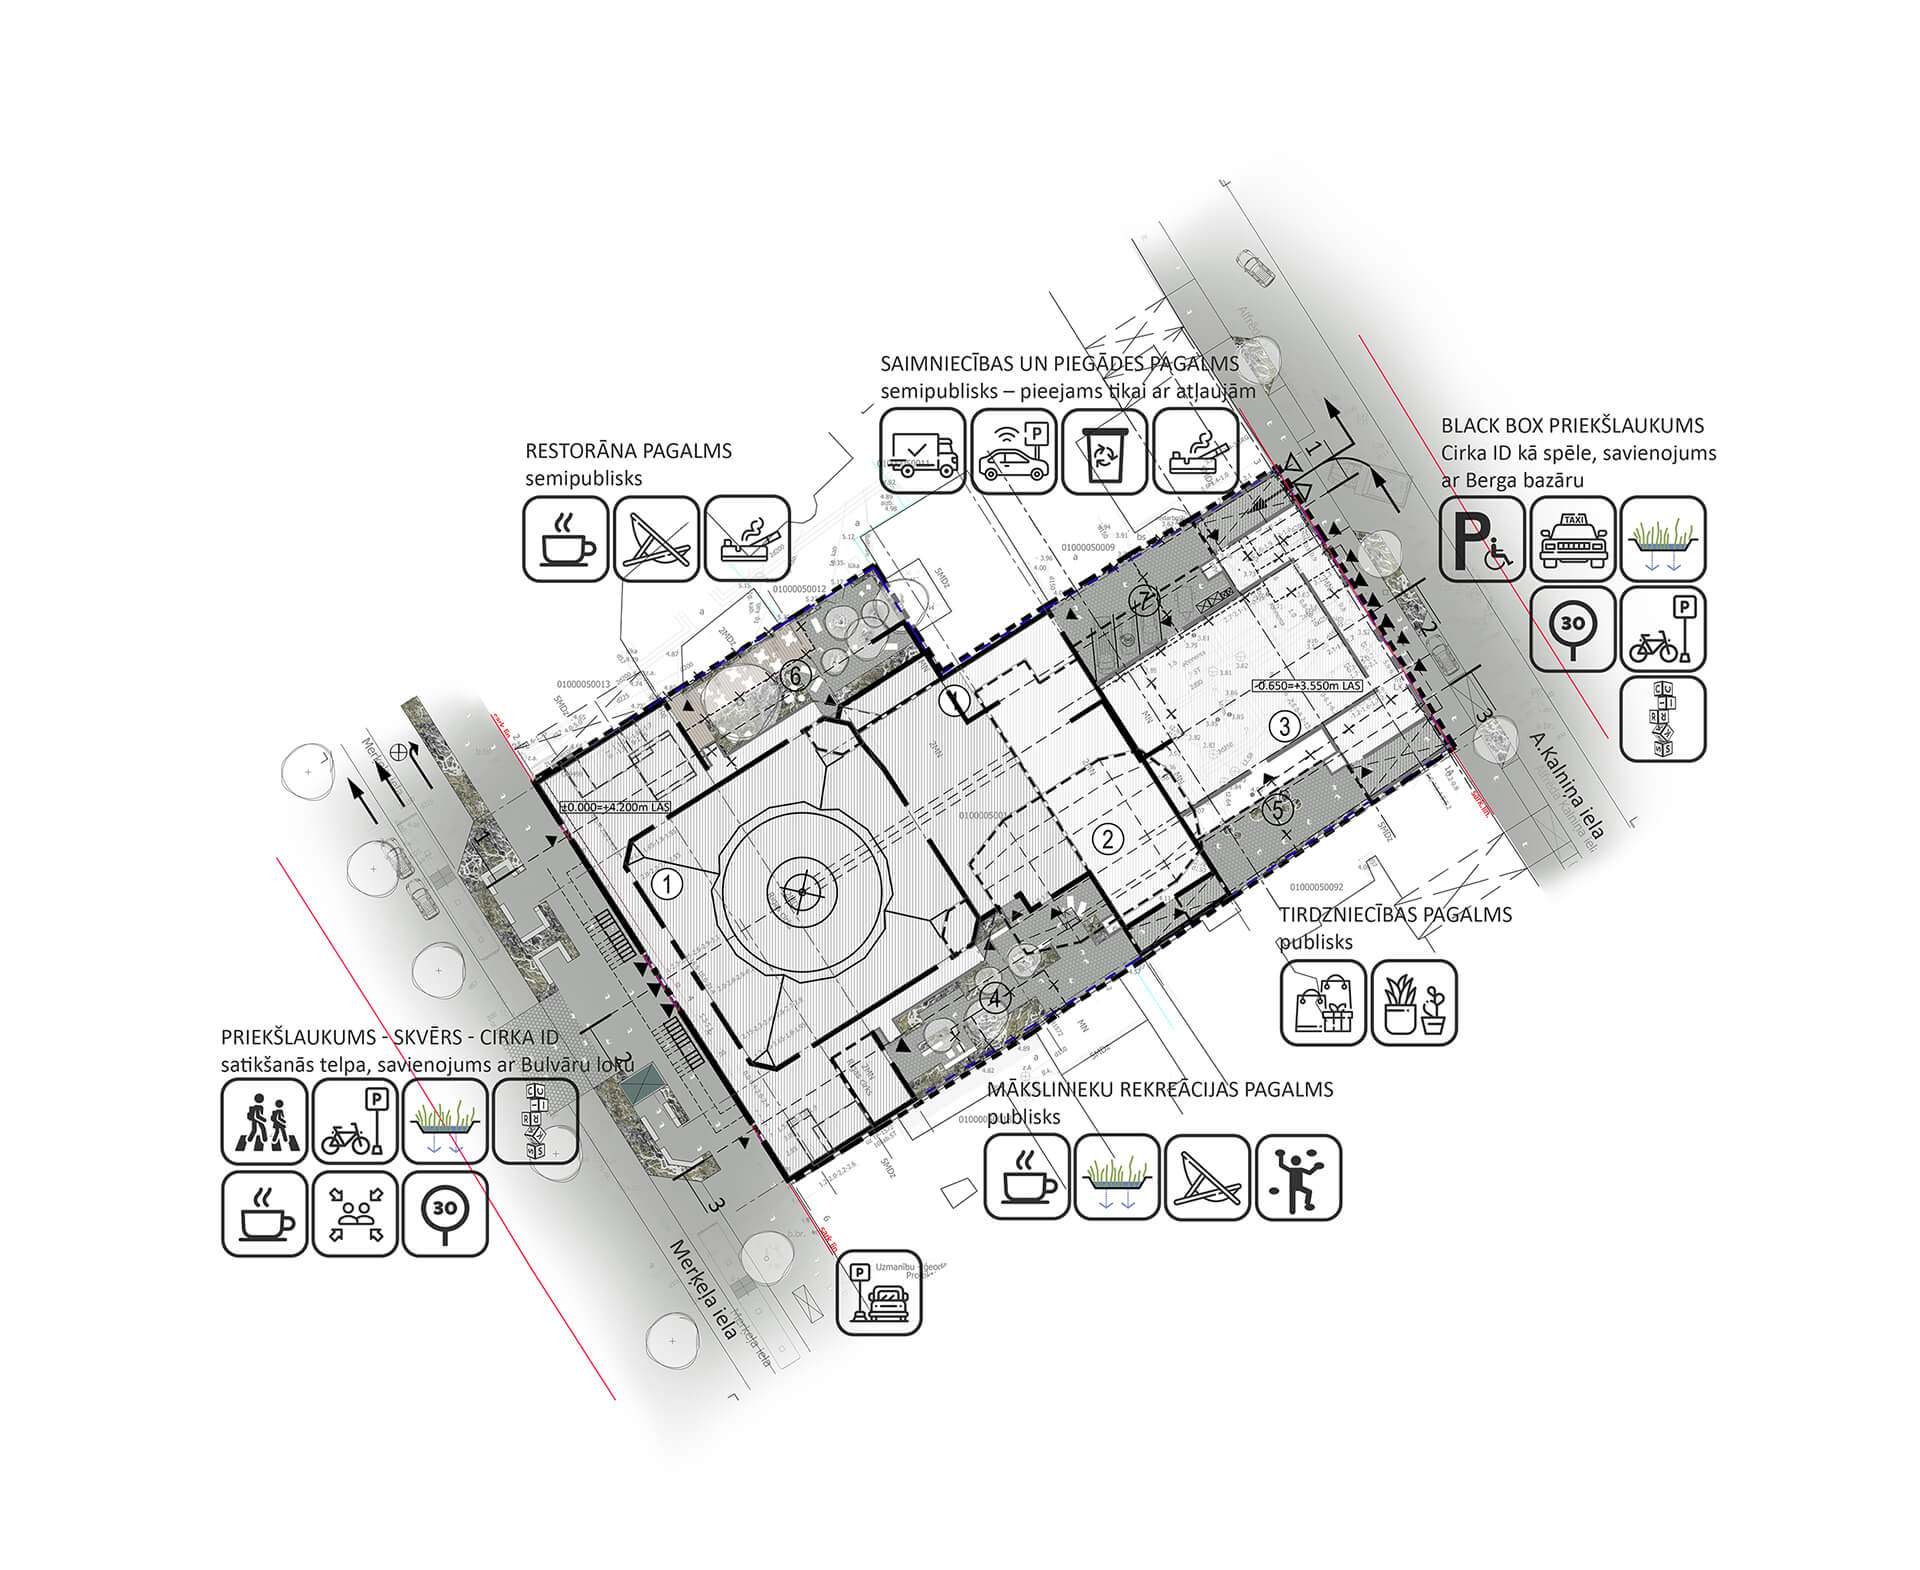 https://laagaarchitects.lv/wp-content/uploads/2019/11/03-01-5-RC.jpg